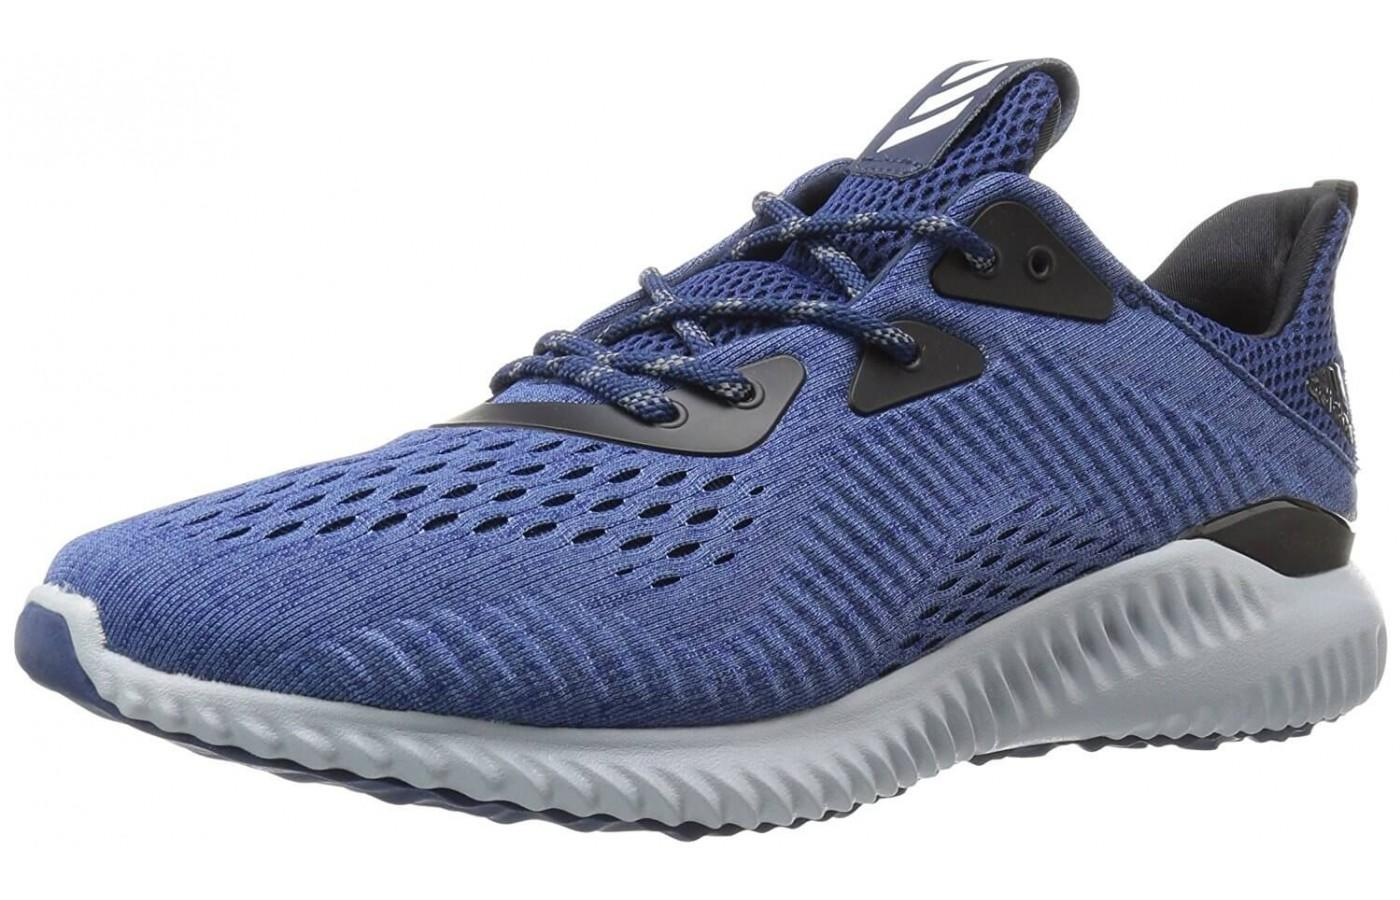 sports shoes f6884 0699c The Adidas Alphabounce EM features Bounce cushioning ...